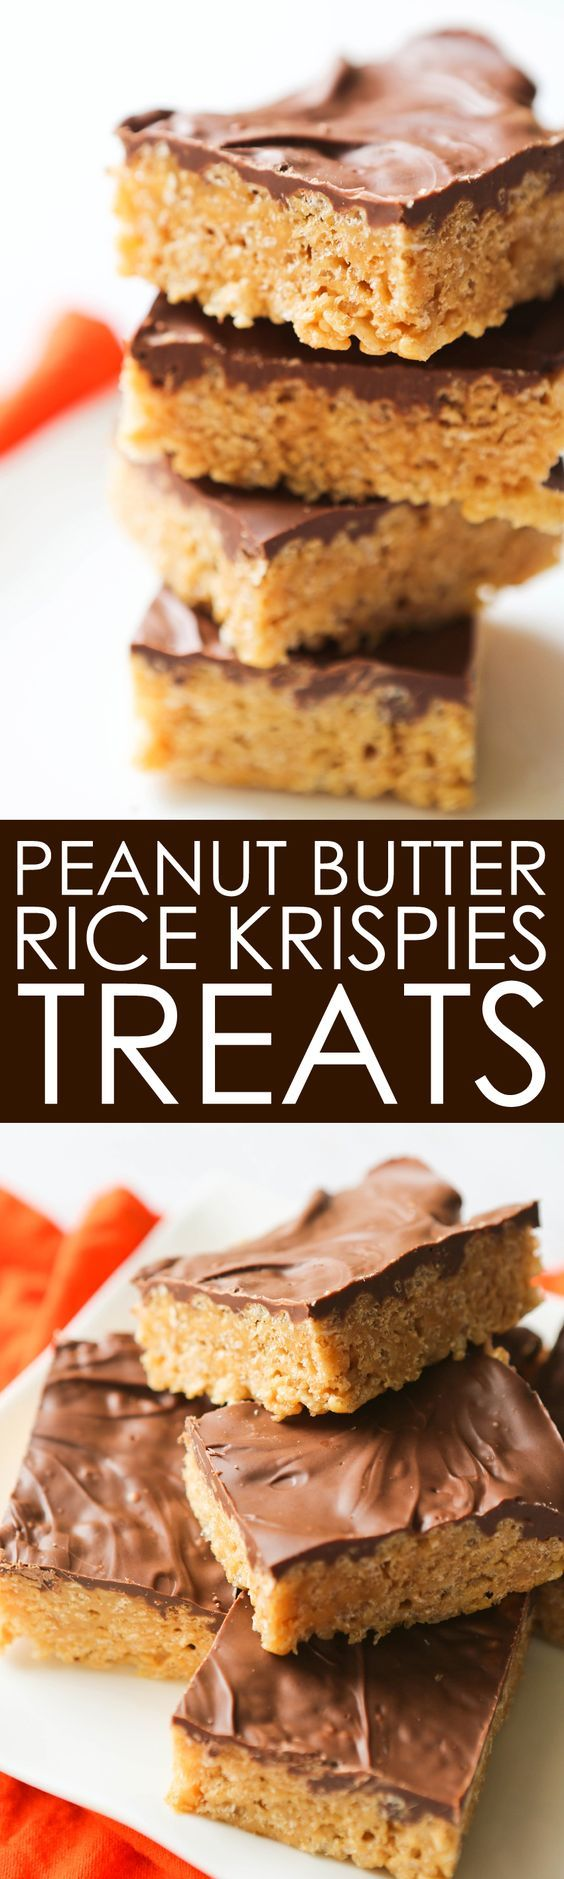 Chocolate-Covered Peanut Butter Rice Krispies Treats  Only 5 ingredients 20 minutes and this irresistible no-bake dessert is done. Always a party hit!